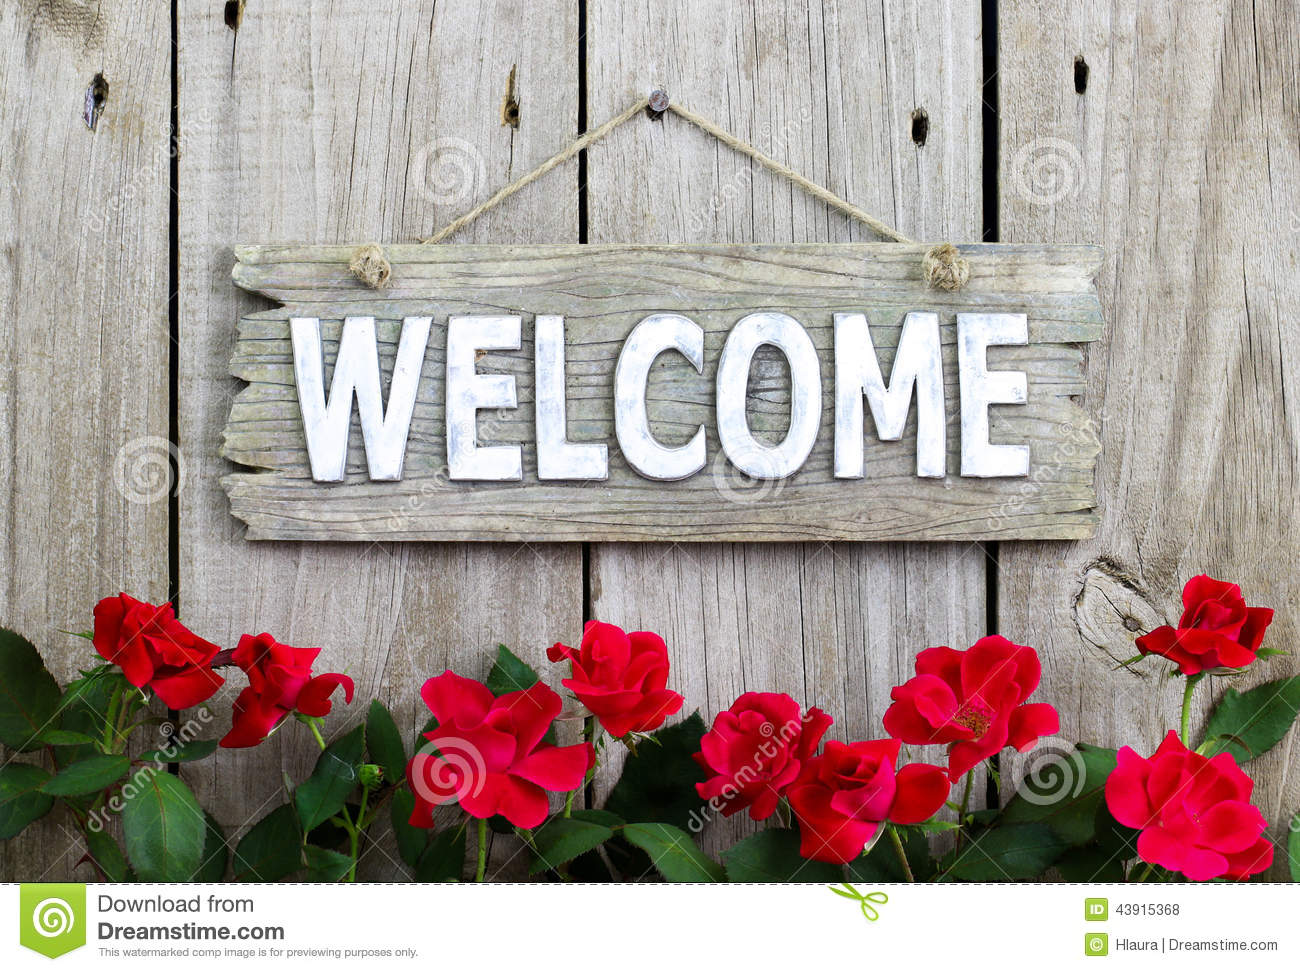 Flower border of red roses by wood welcome sign hanging on distresed wooden fence